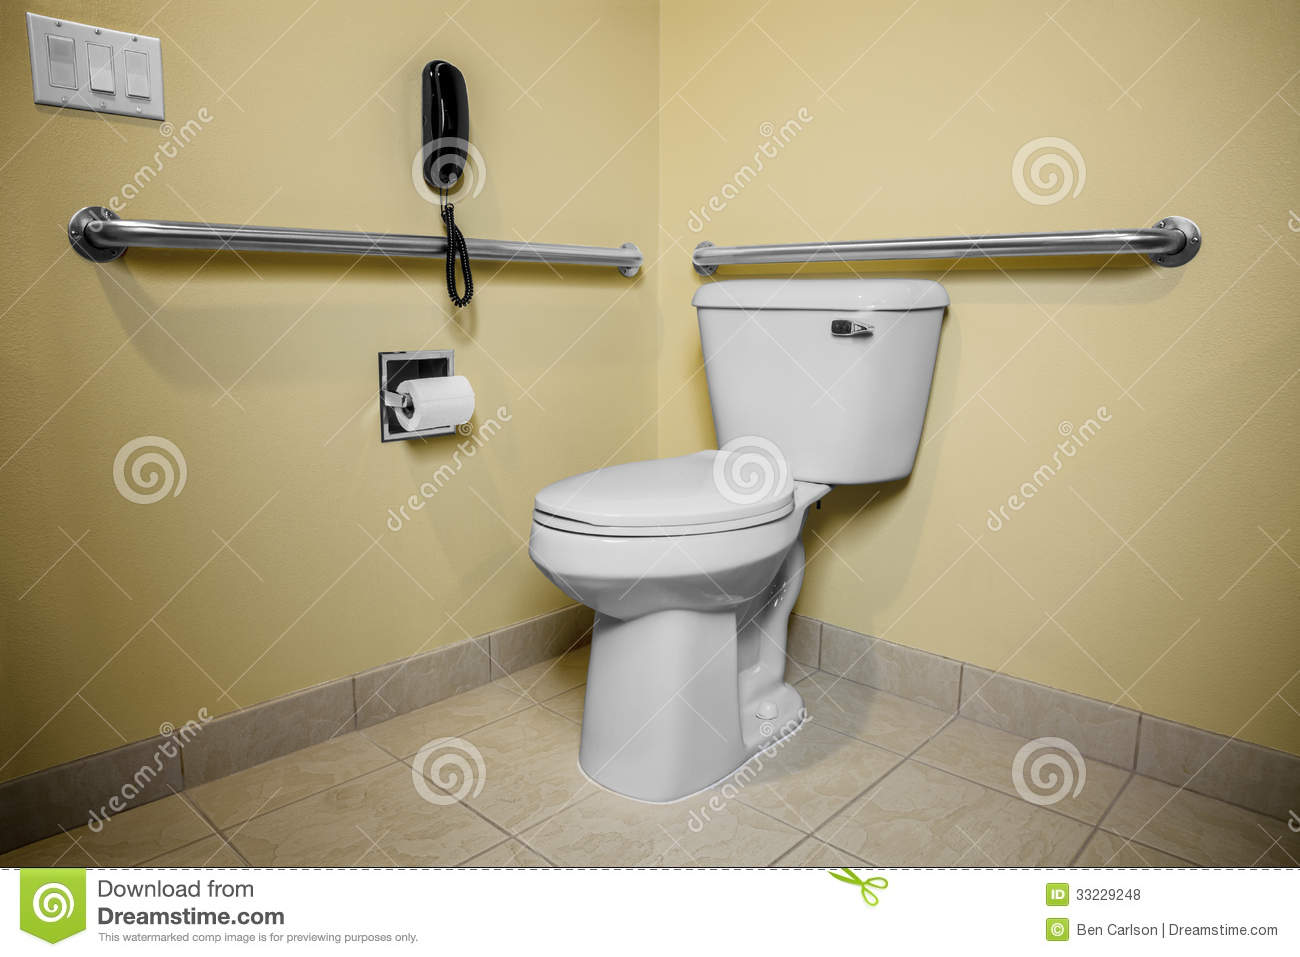 Handicap kitchen design - Wall Handles Help The Disabled And Handicap Use The Toilet With Easier